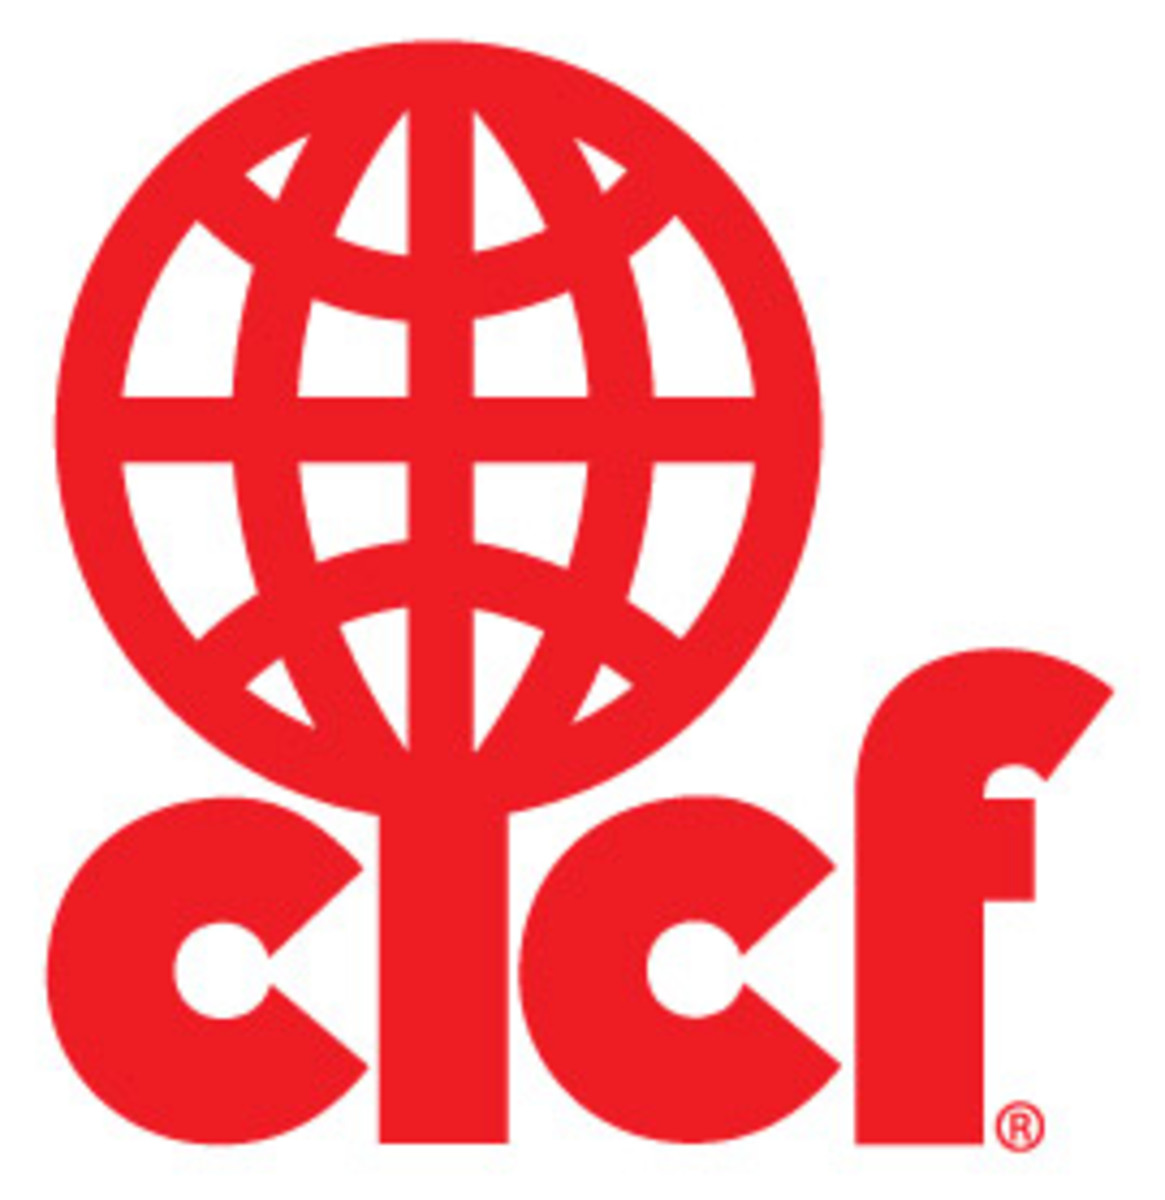 Heritage Auctions is the official auction company for CICF 2016.